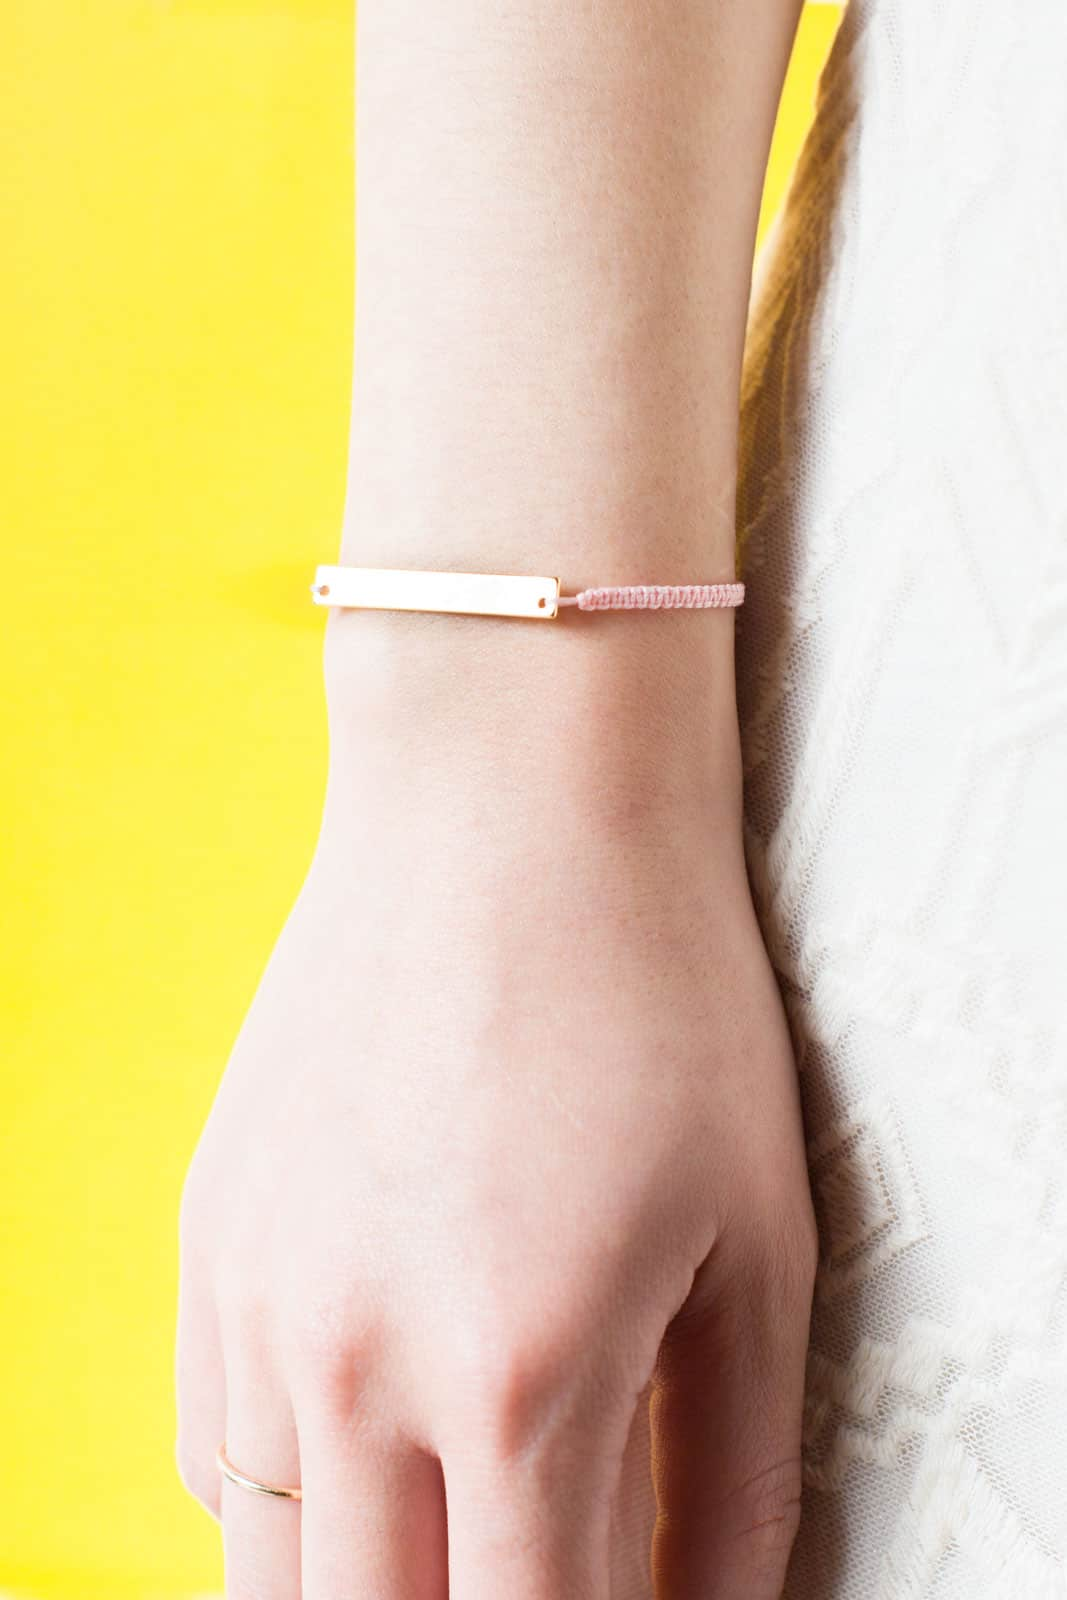 Make a simple but stunning bracelet.